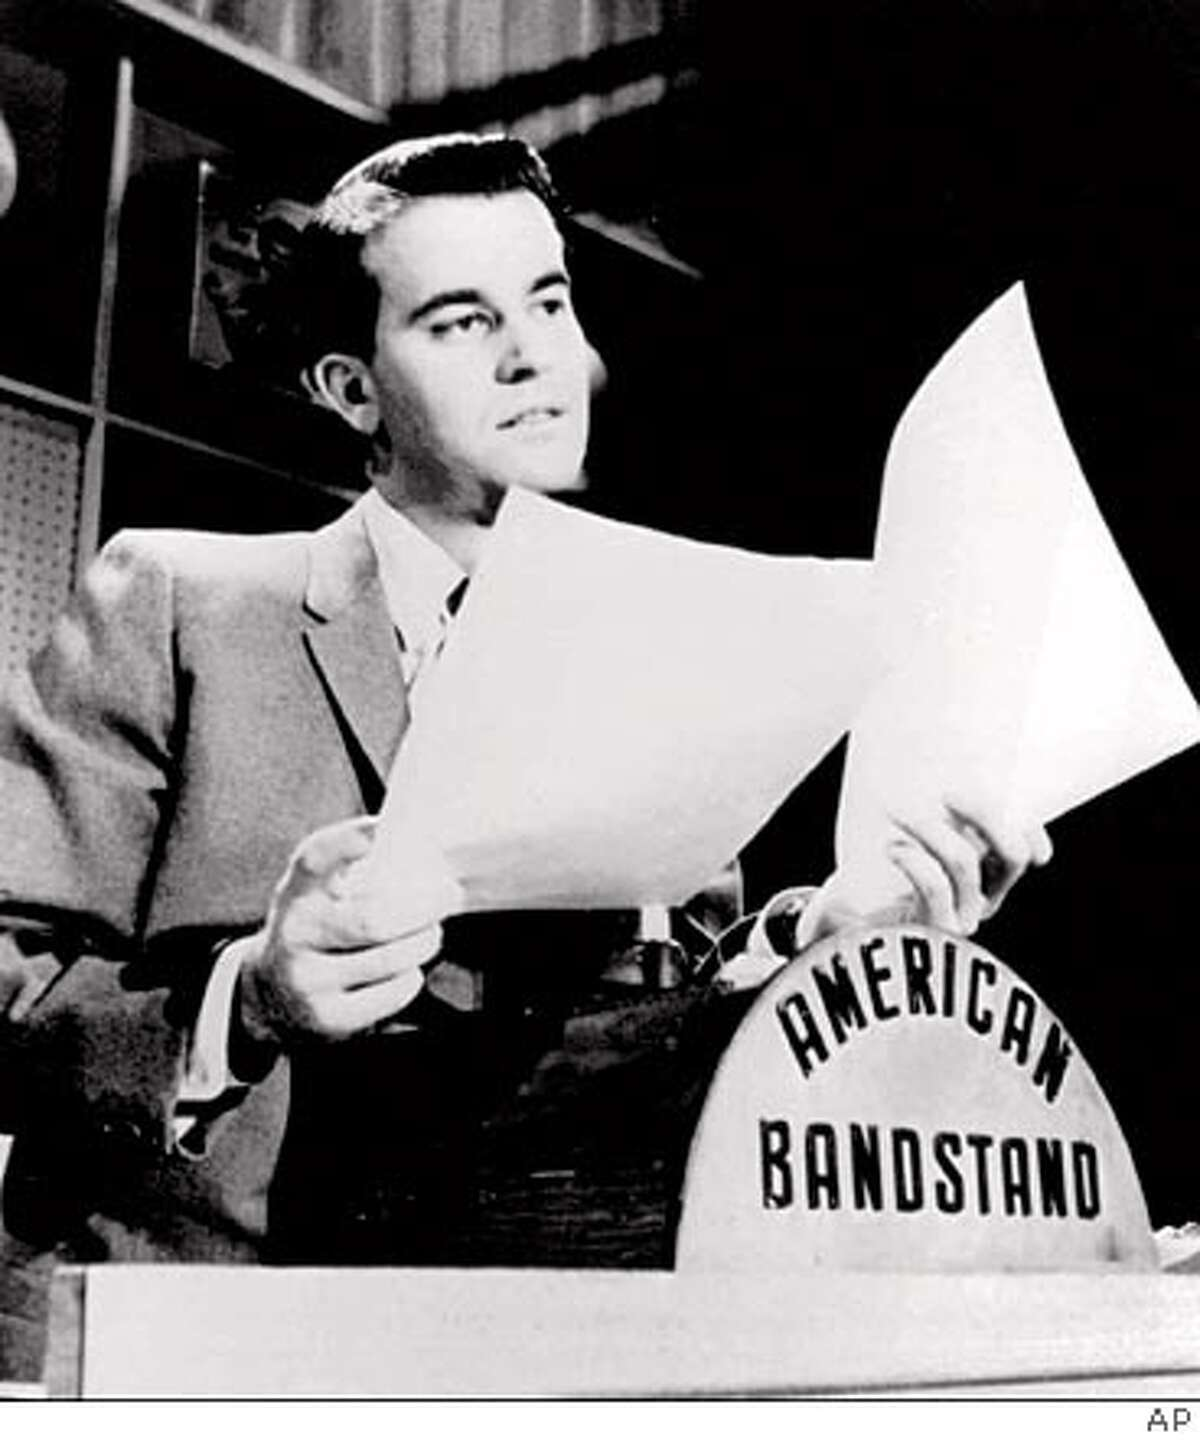 """ADV. FOR WKD. EDS., NOV. 4-7--FILE--Dick Clark looks over some papers during an """"American Bandstand"""" show in Philadelphia in this undated photo. """"American Bandstand"""" first aired as a local show in Philadelphia, gained popularity with host Dick Clark after he joined the program in 1956, and then went national in 1957. (AP Photo/File) ALSO RAN 5/2/02"""